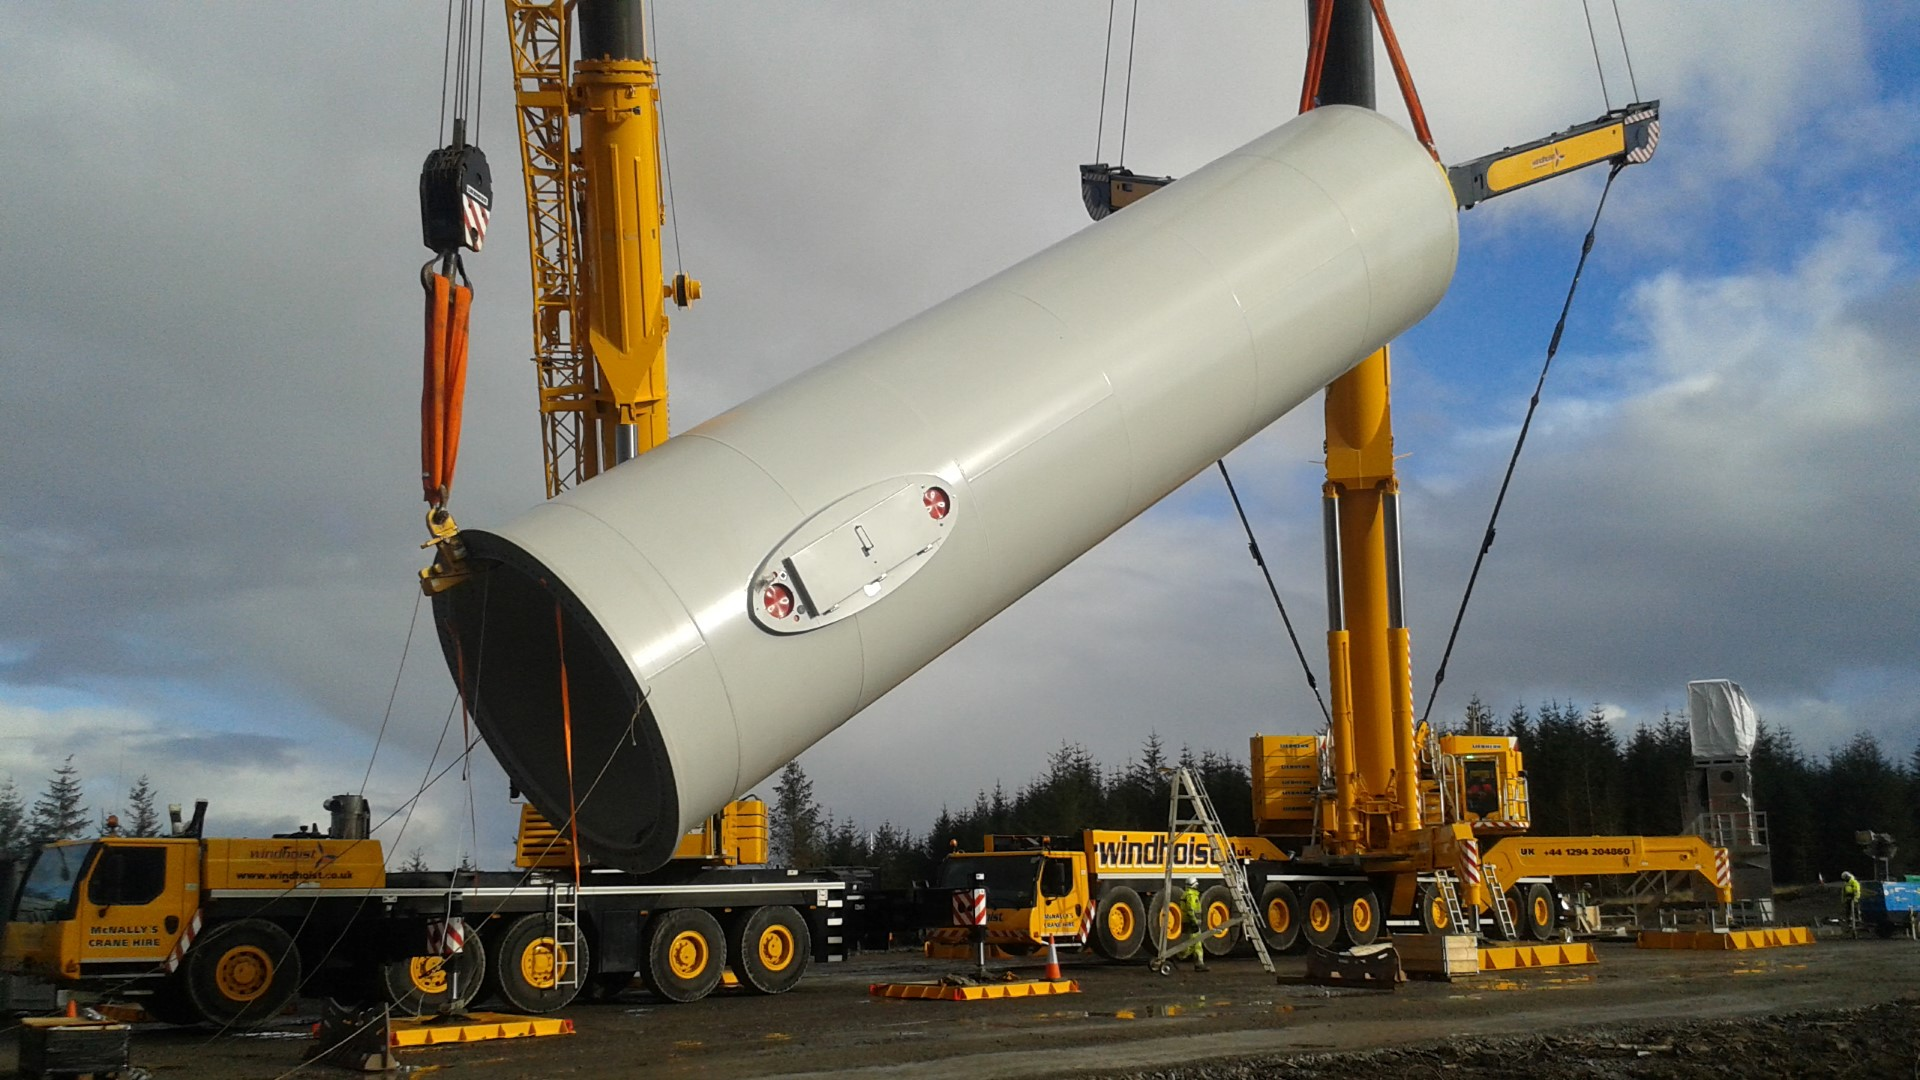 Pen y Cymoedd Wind Farm turbine component being lifted into place